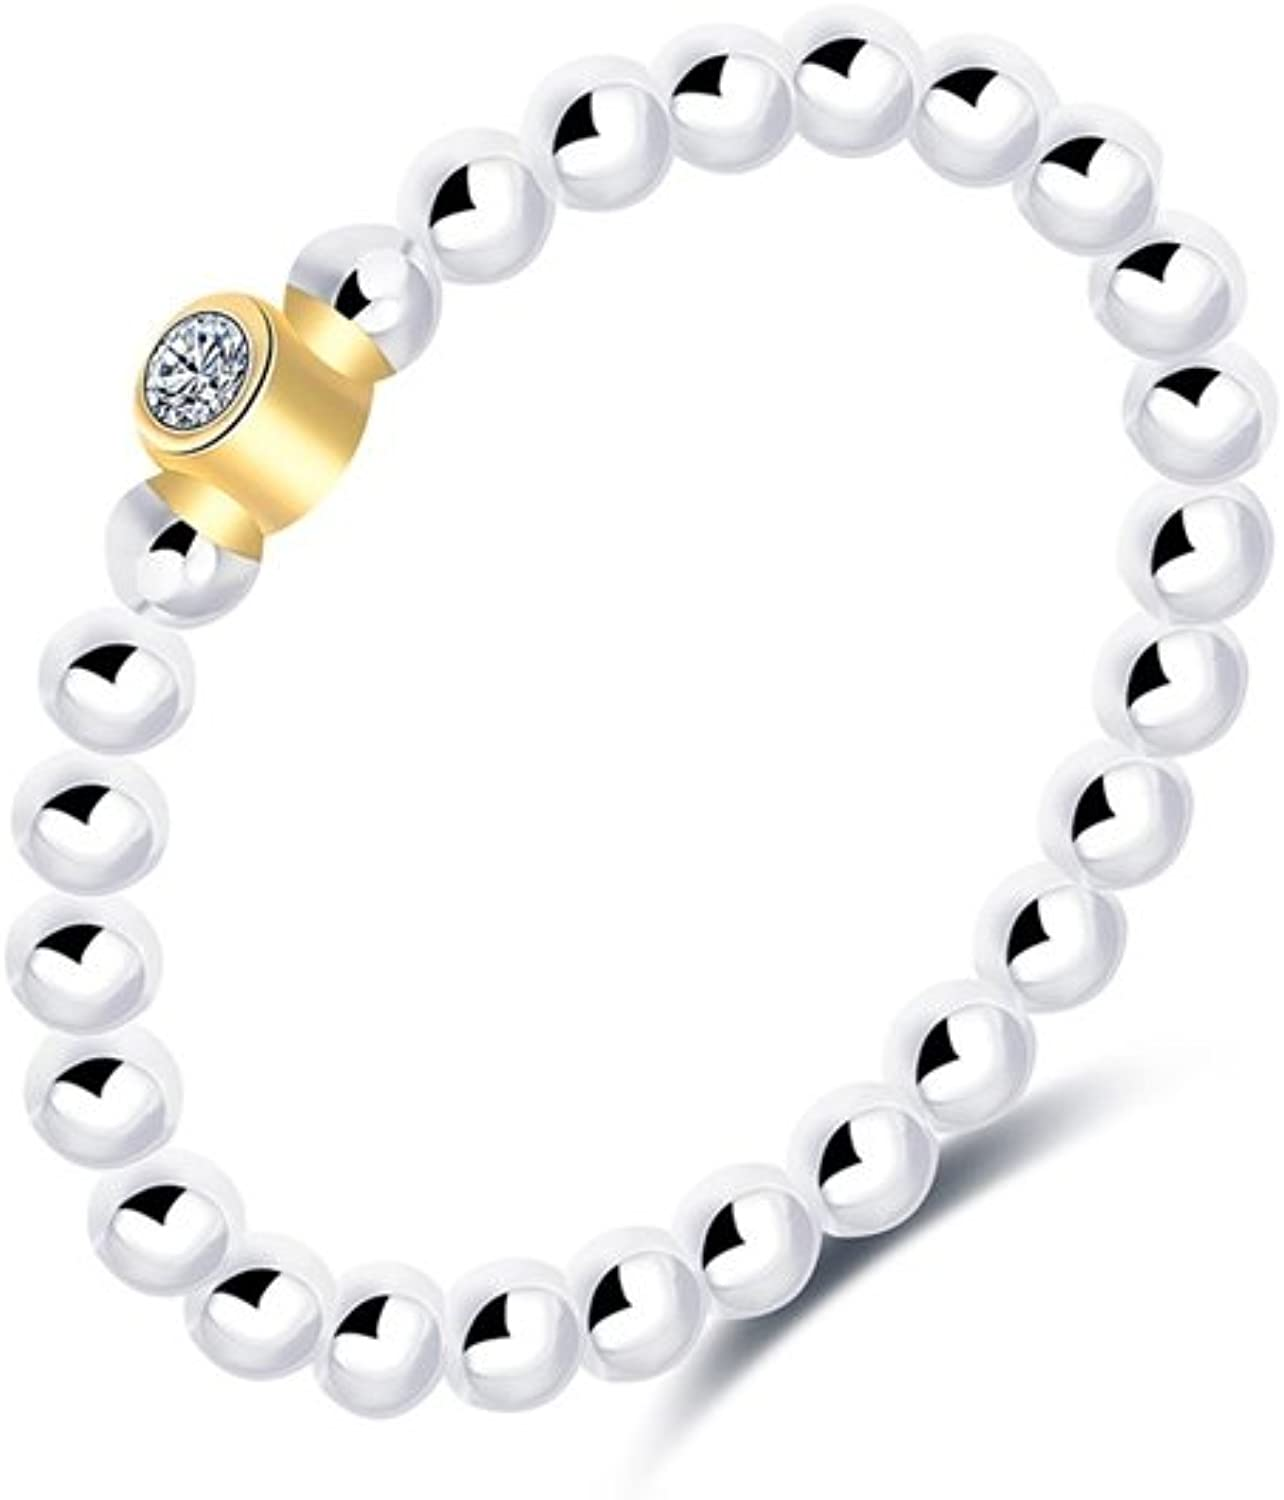 Ring Alliance Solitaire and White Swarovski Elements Crystal  bluee Pearls